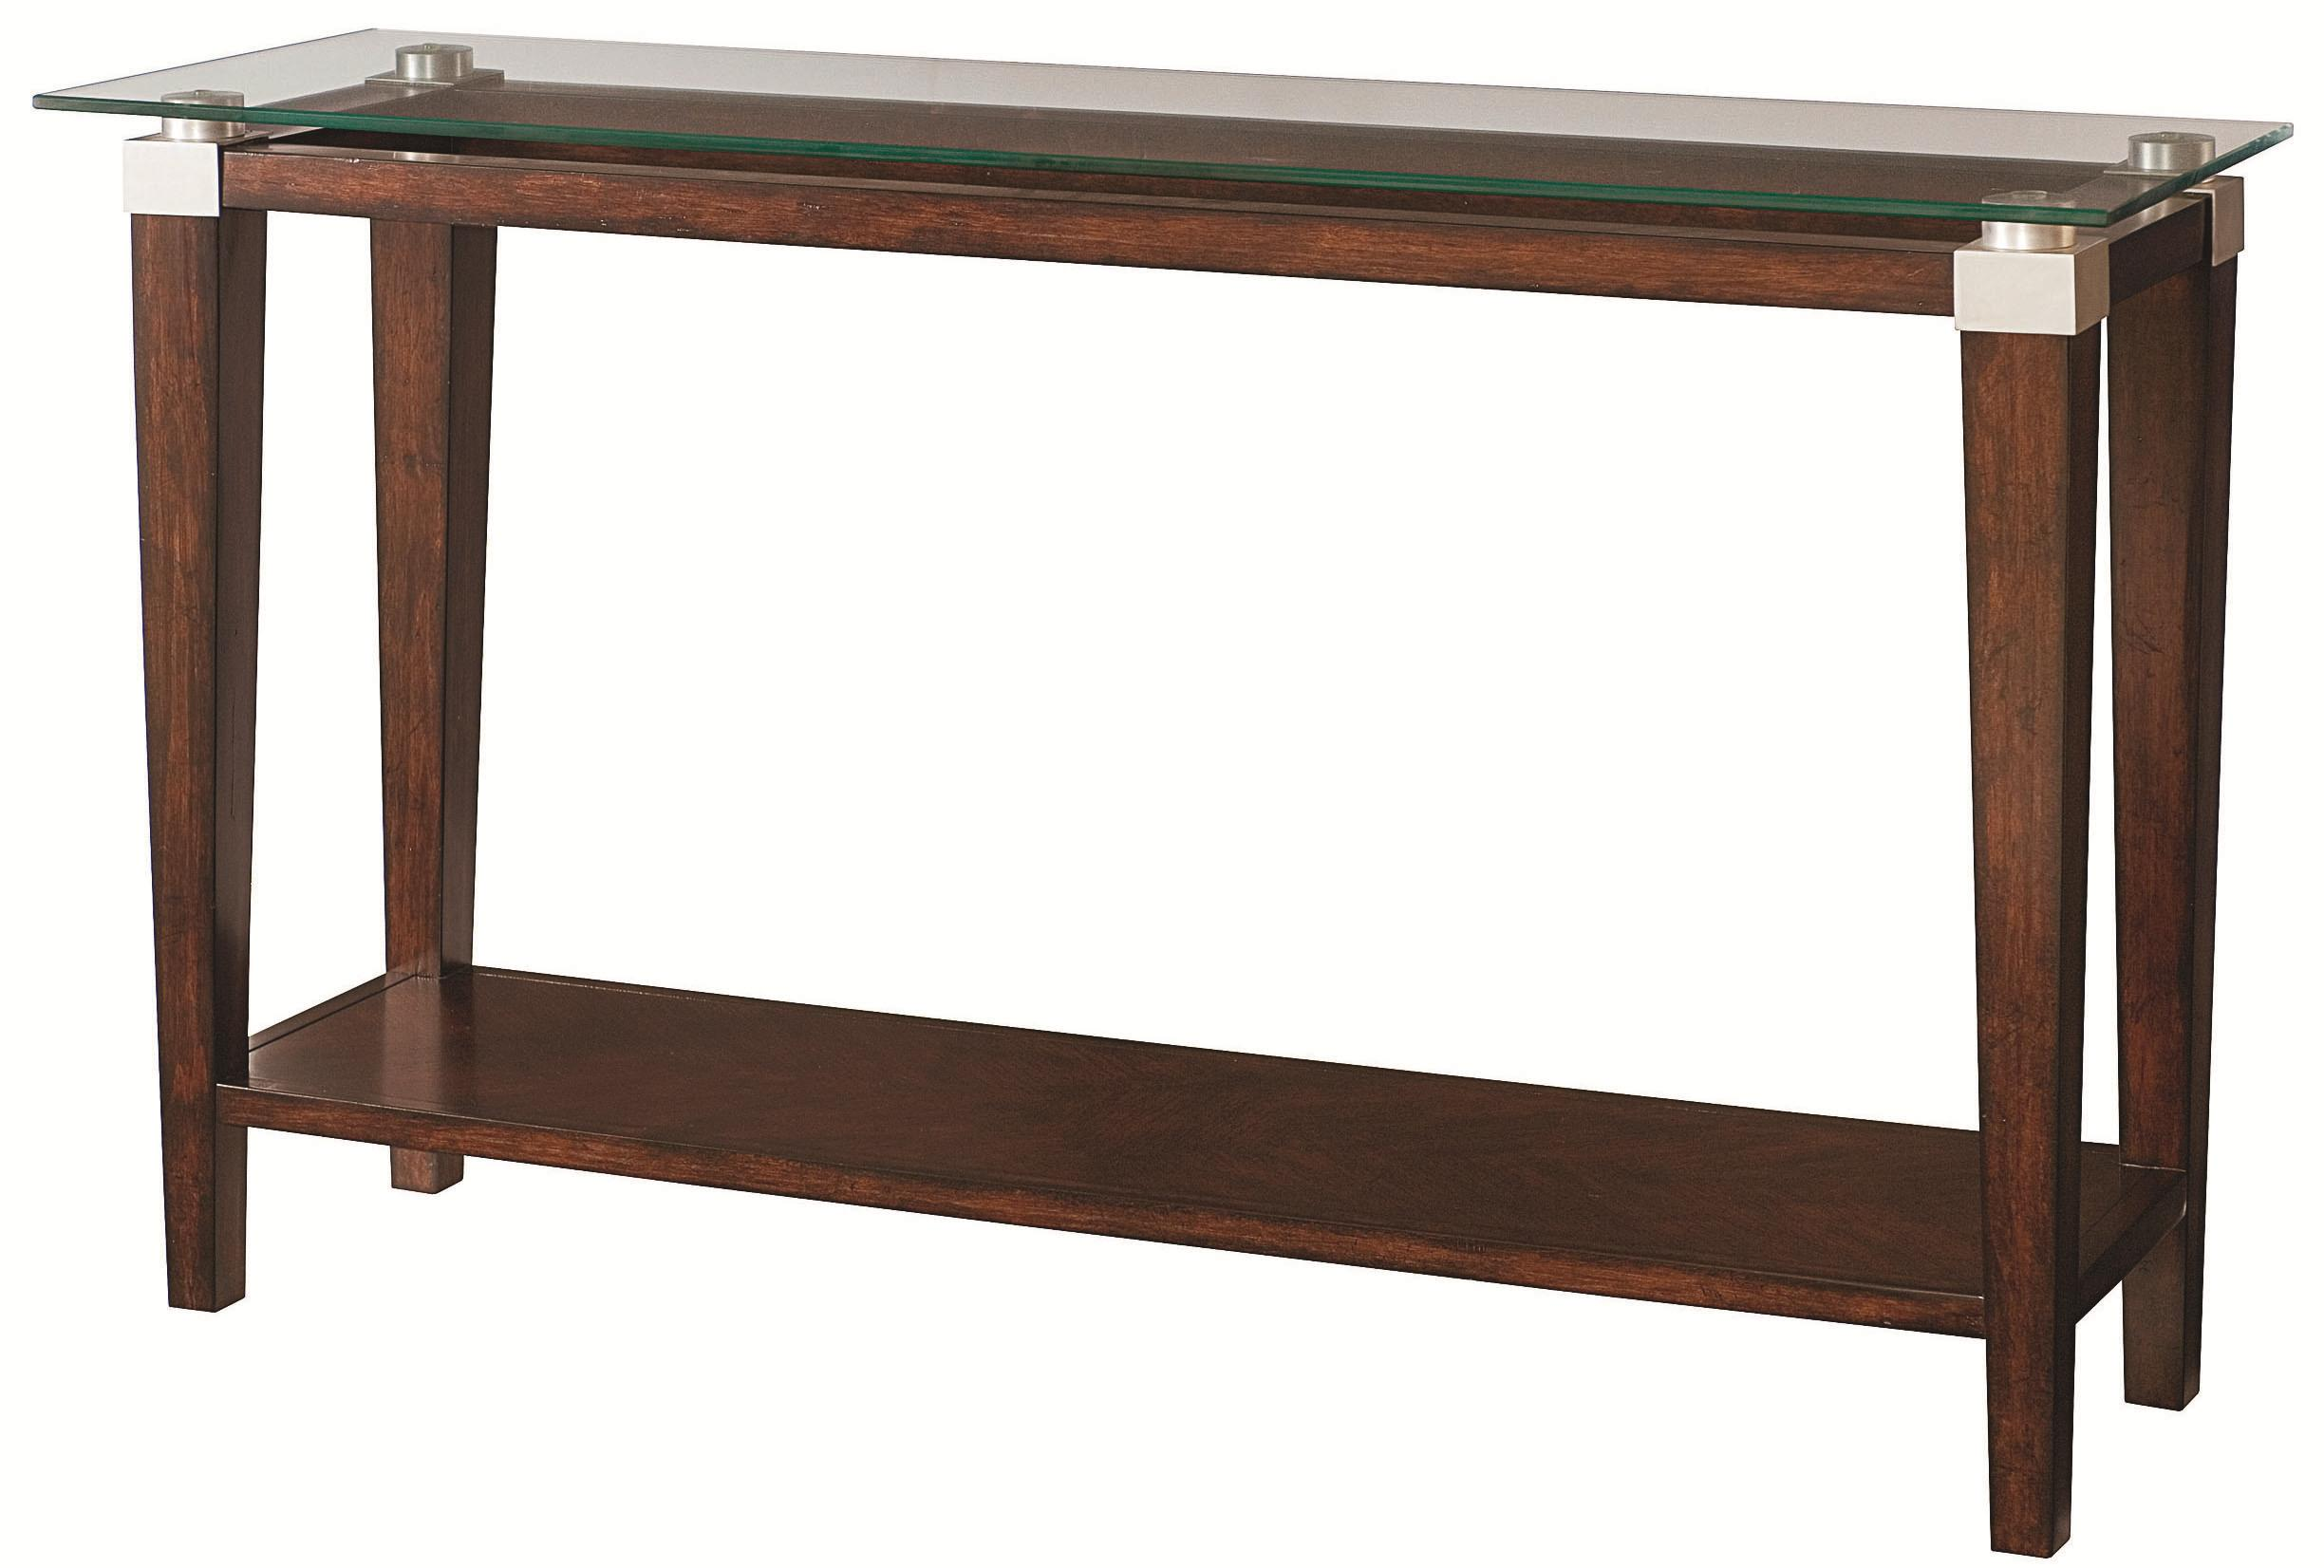 Contemporary Sofa Table With Glass Top By Hammary